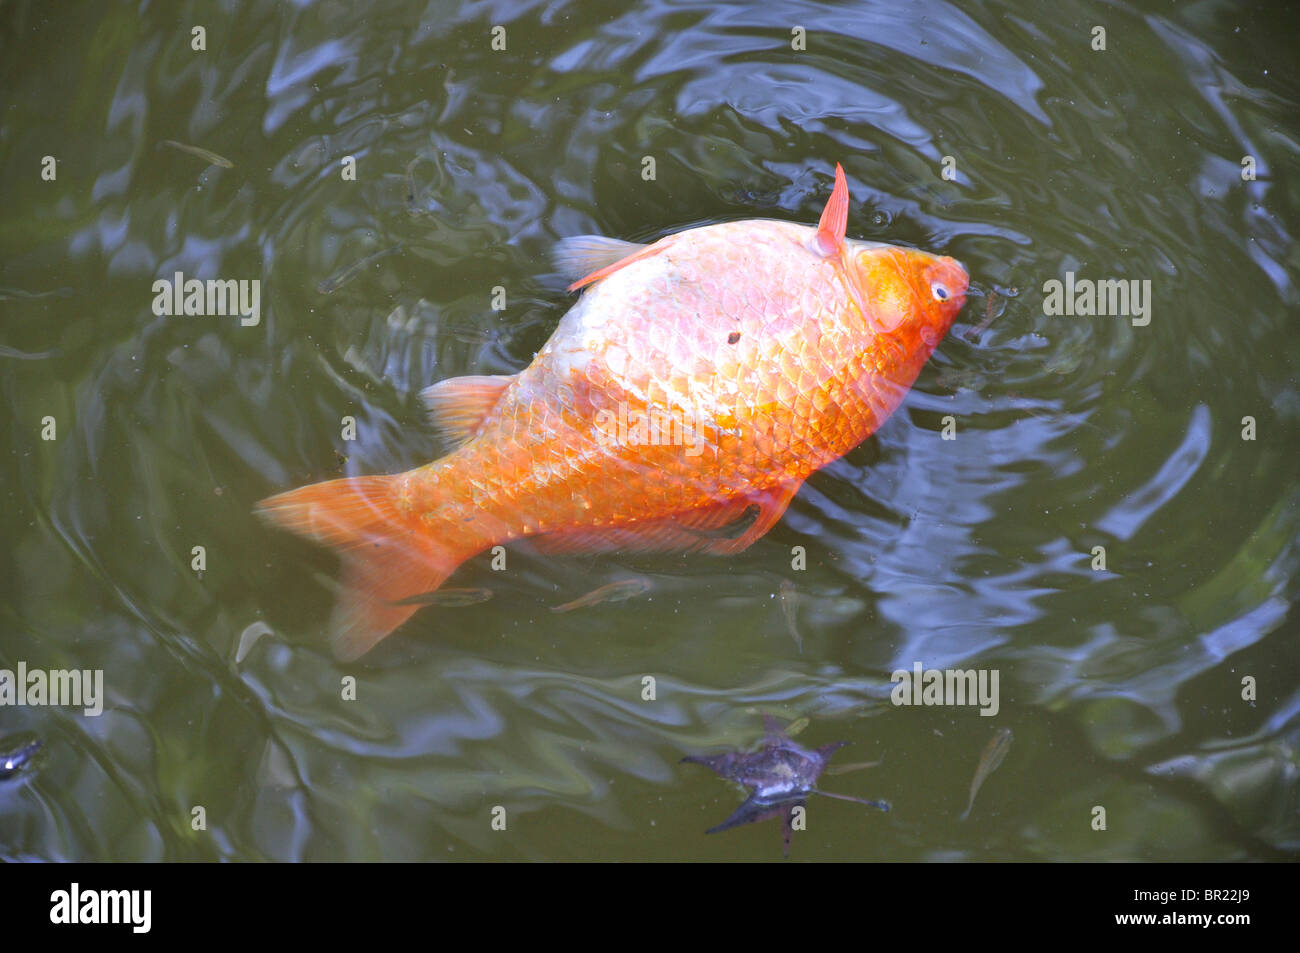 Dead Fish In Pond Stock Photo Royalty Free Image 31393441 Alamy